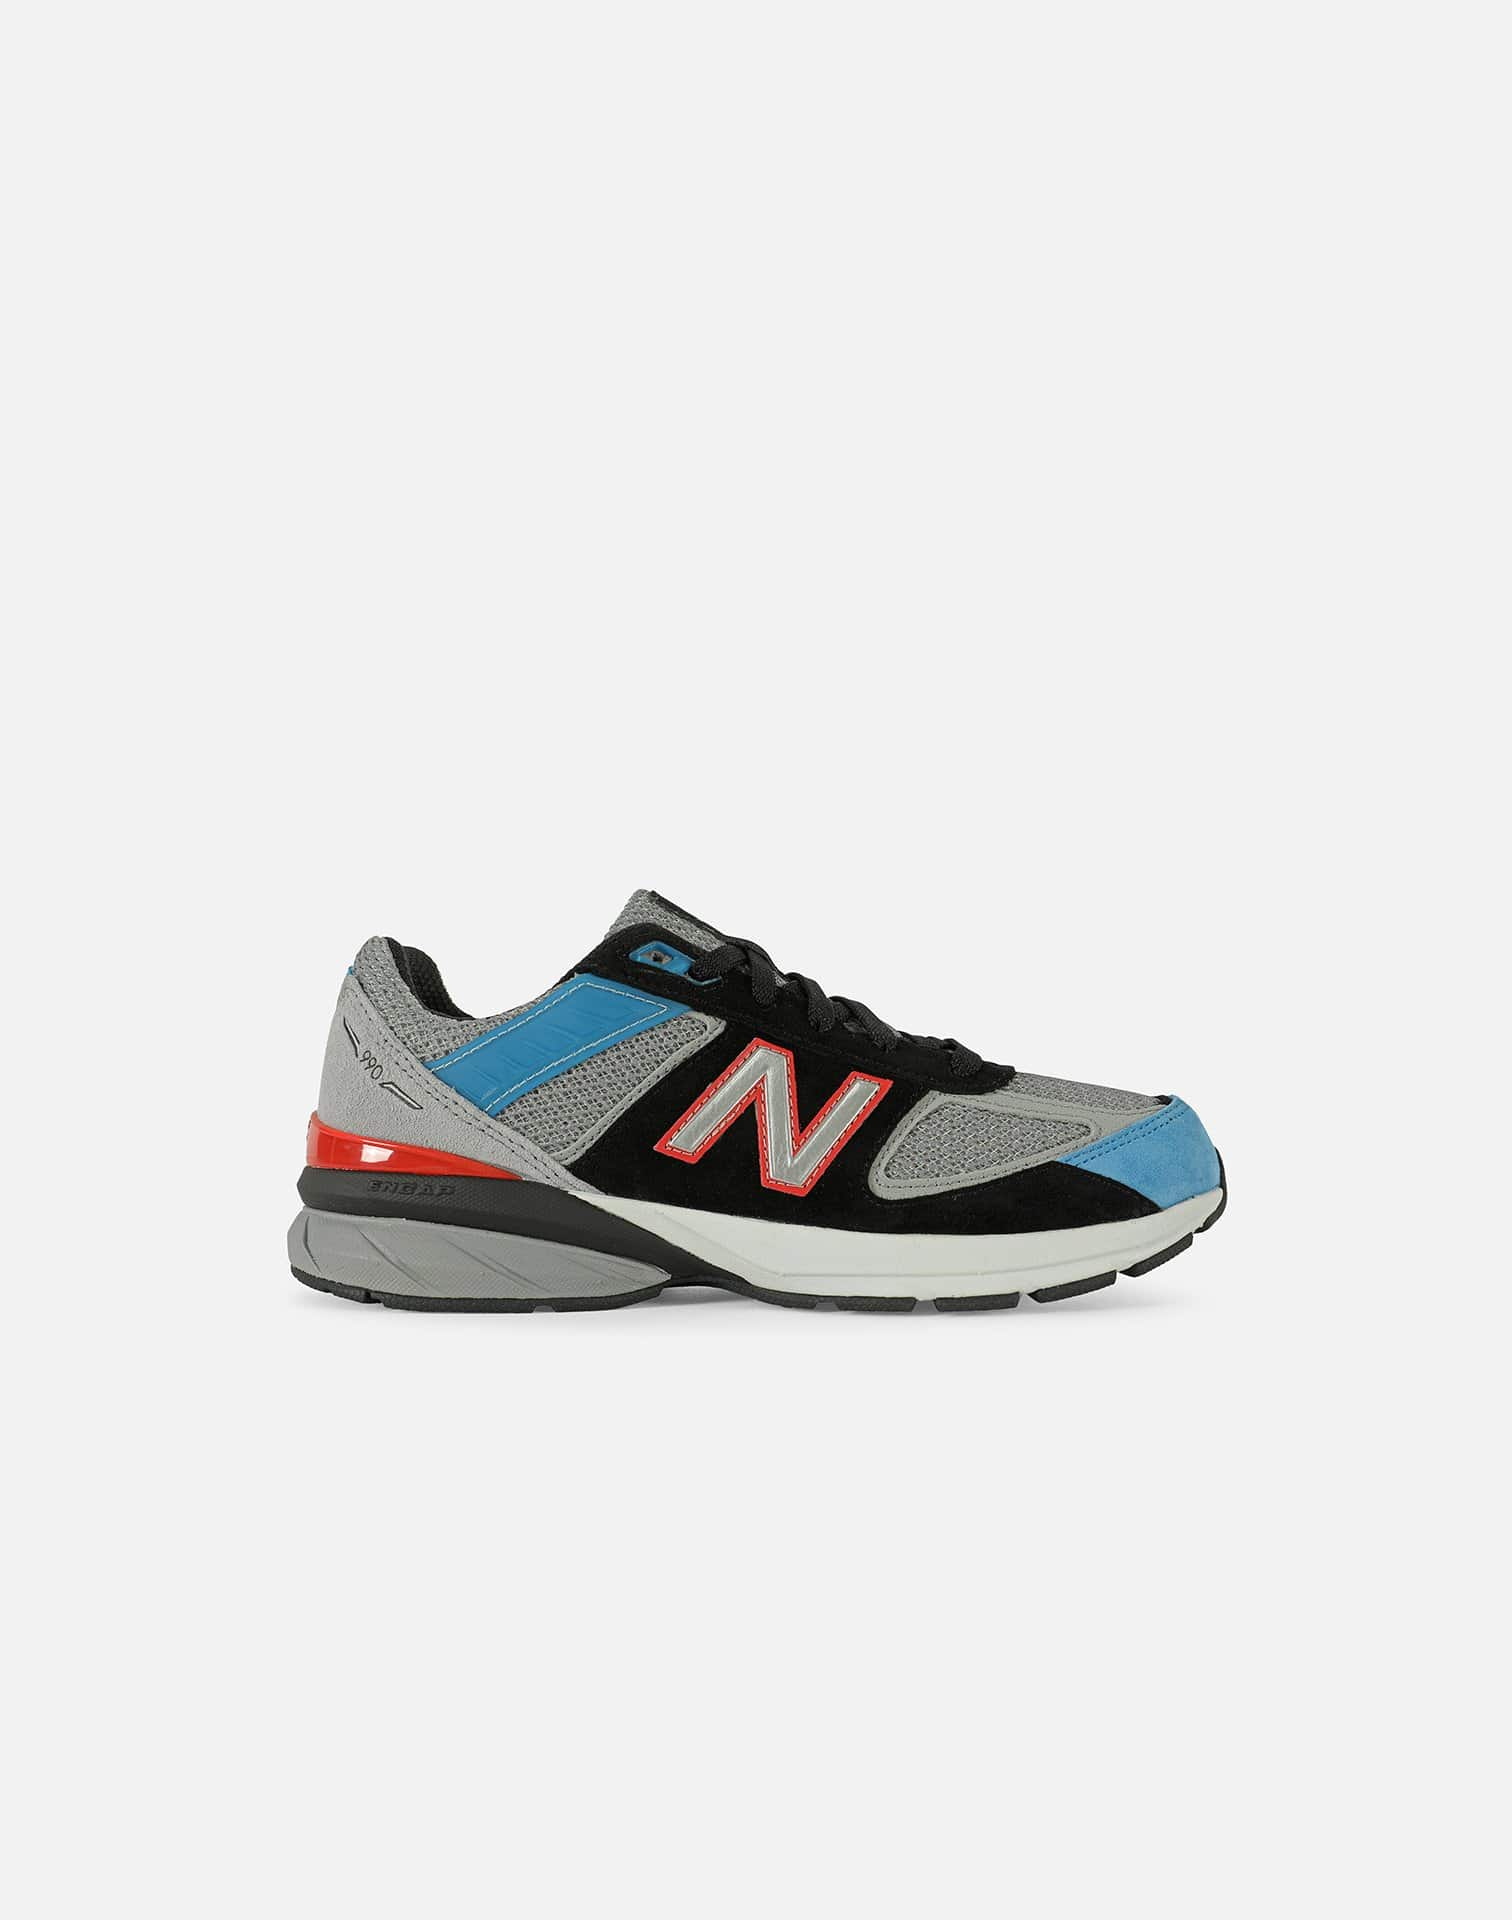 New Balance 990V5 'Fast Lane' SMU Grade-School